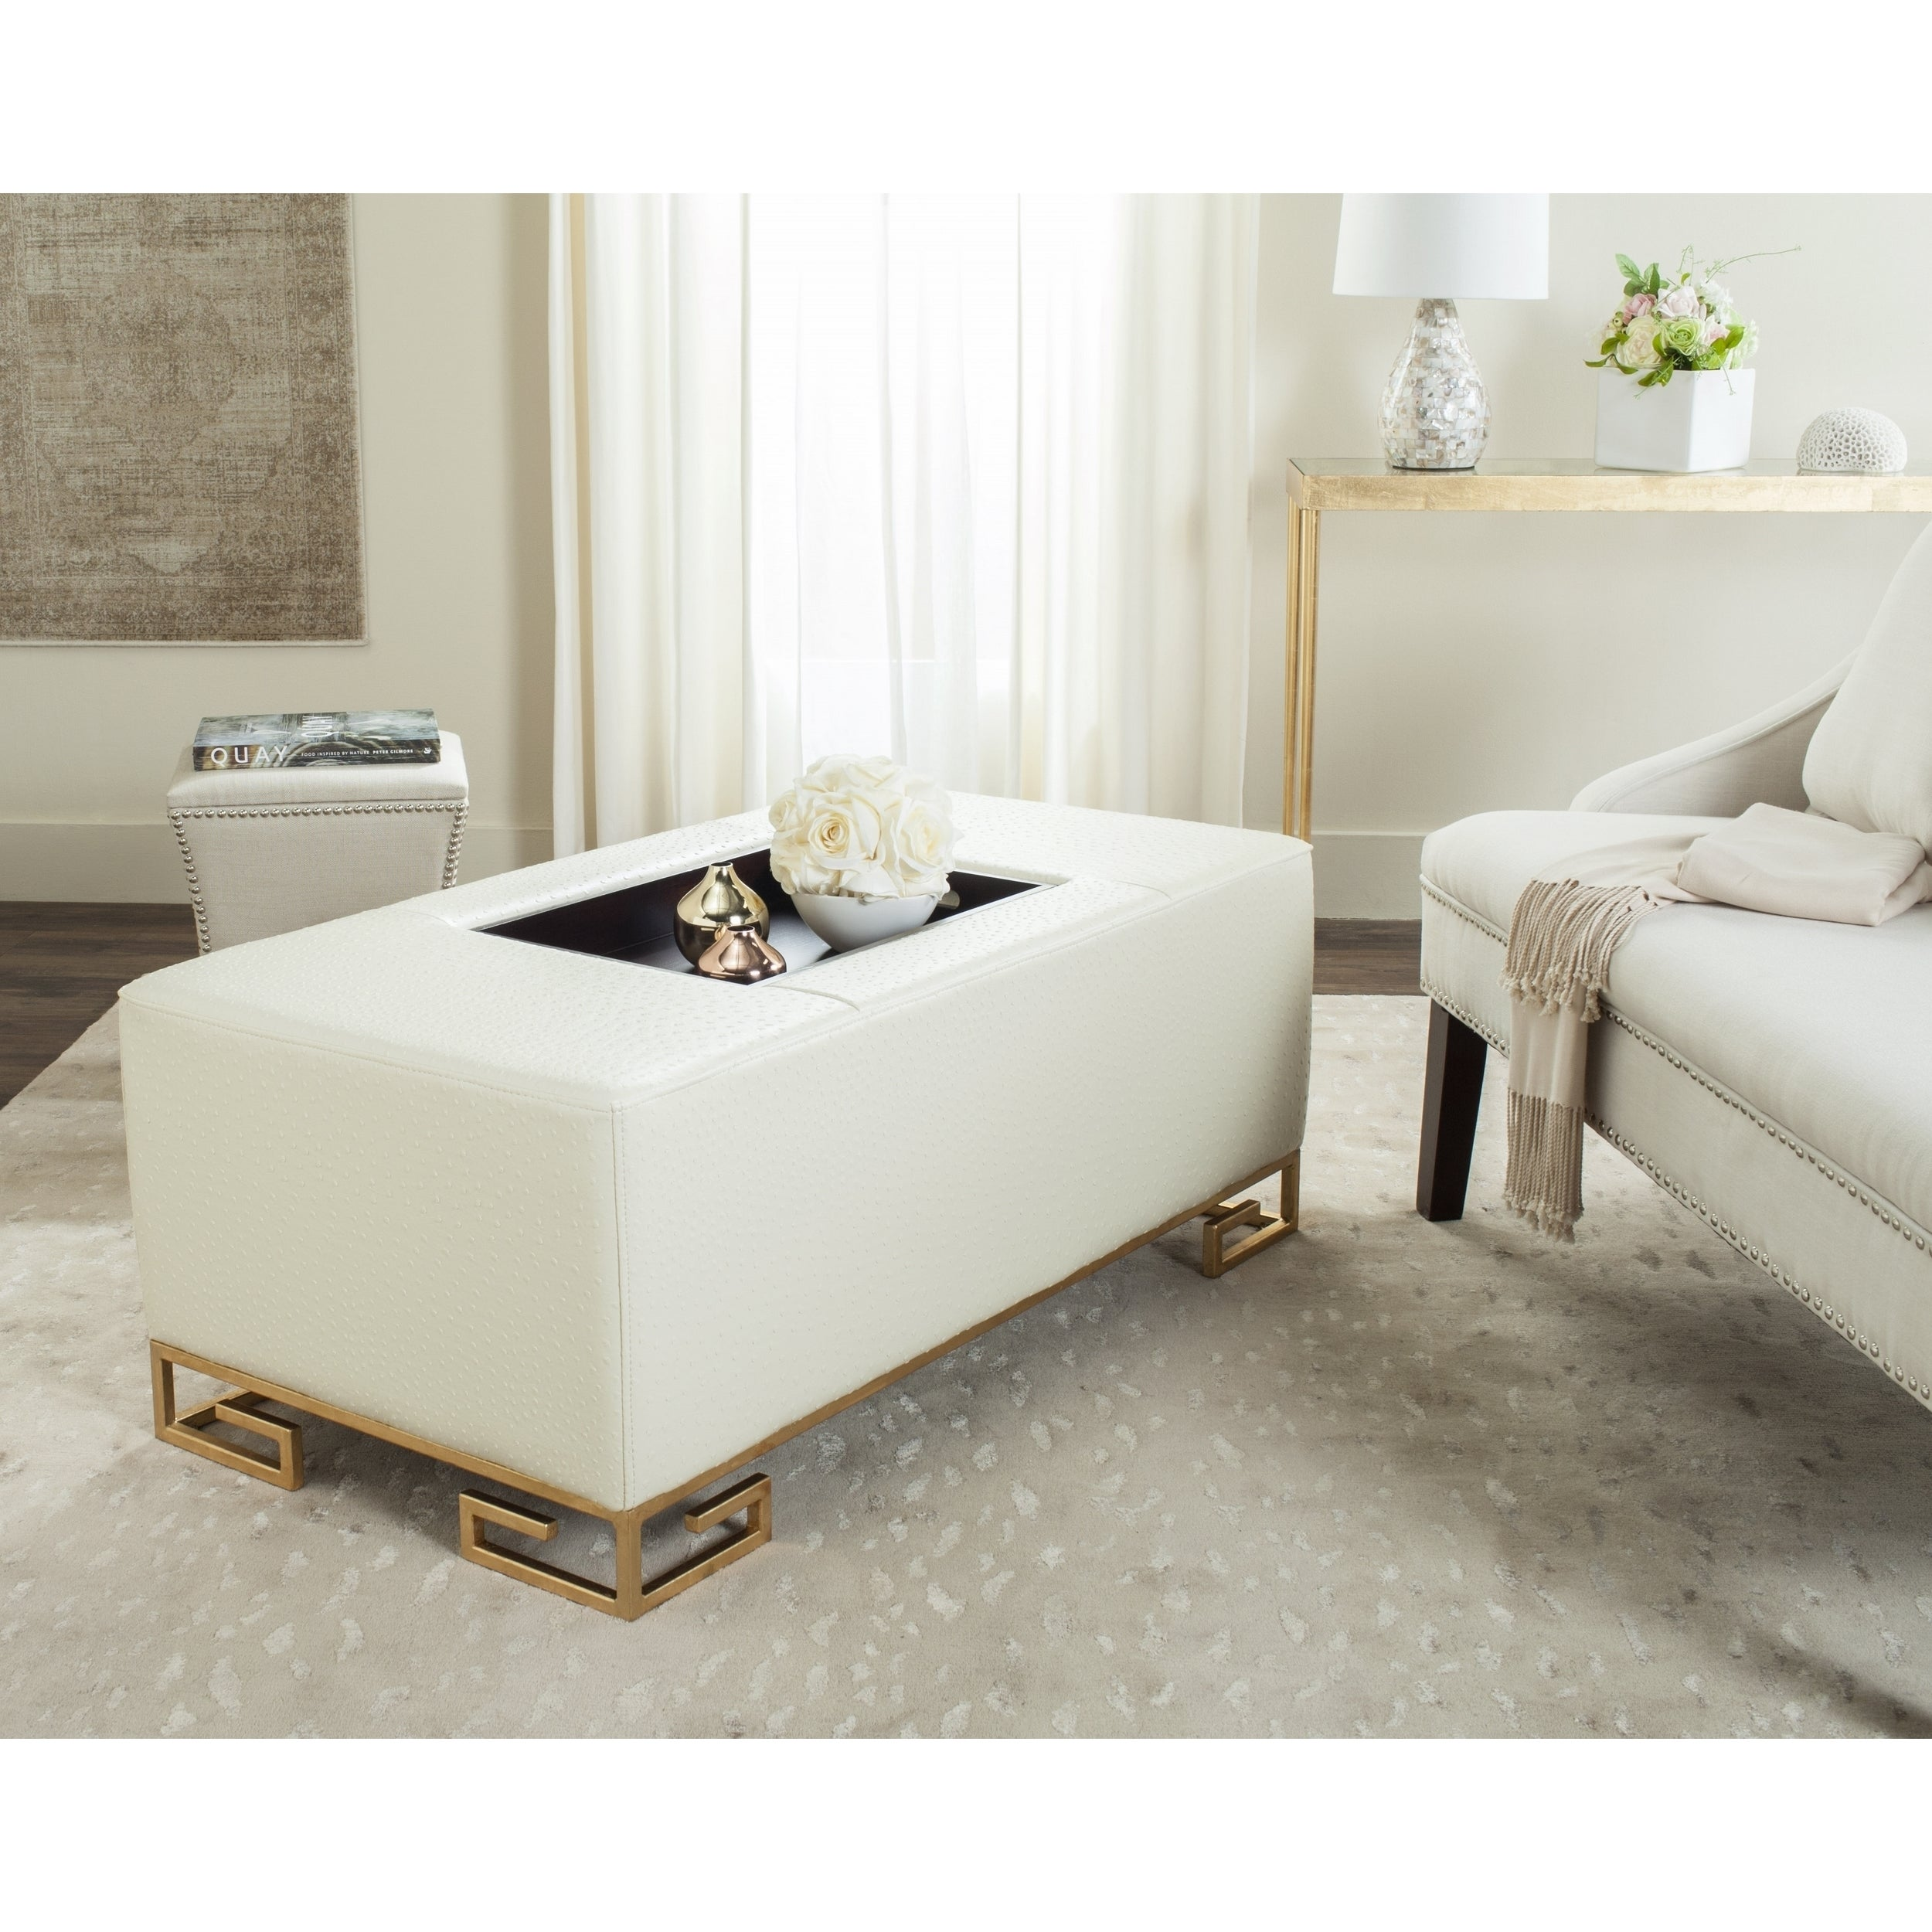 Safavieh Julian Faux Ostrich Tray Cream Ottoman Coffee Table Free Shipping Today 13342414